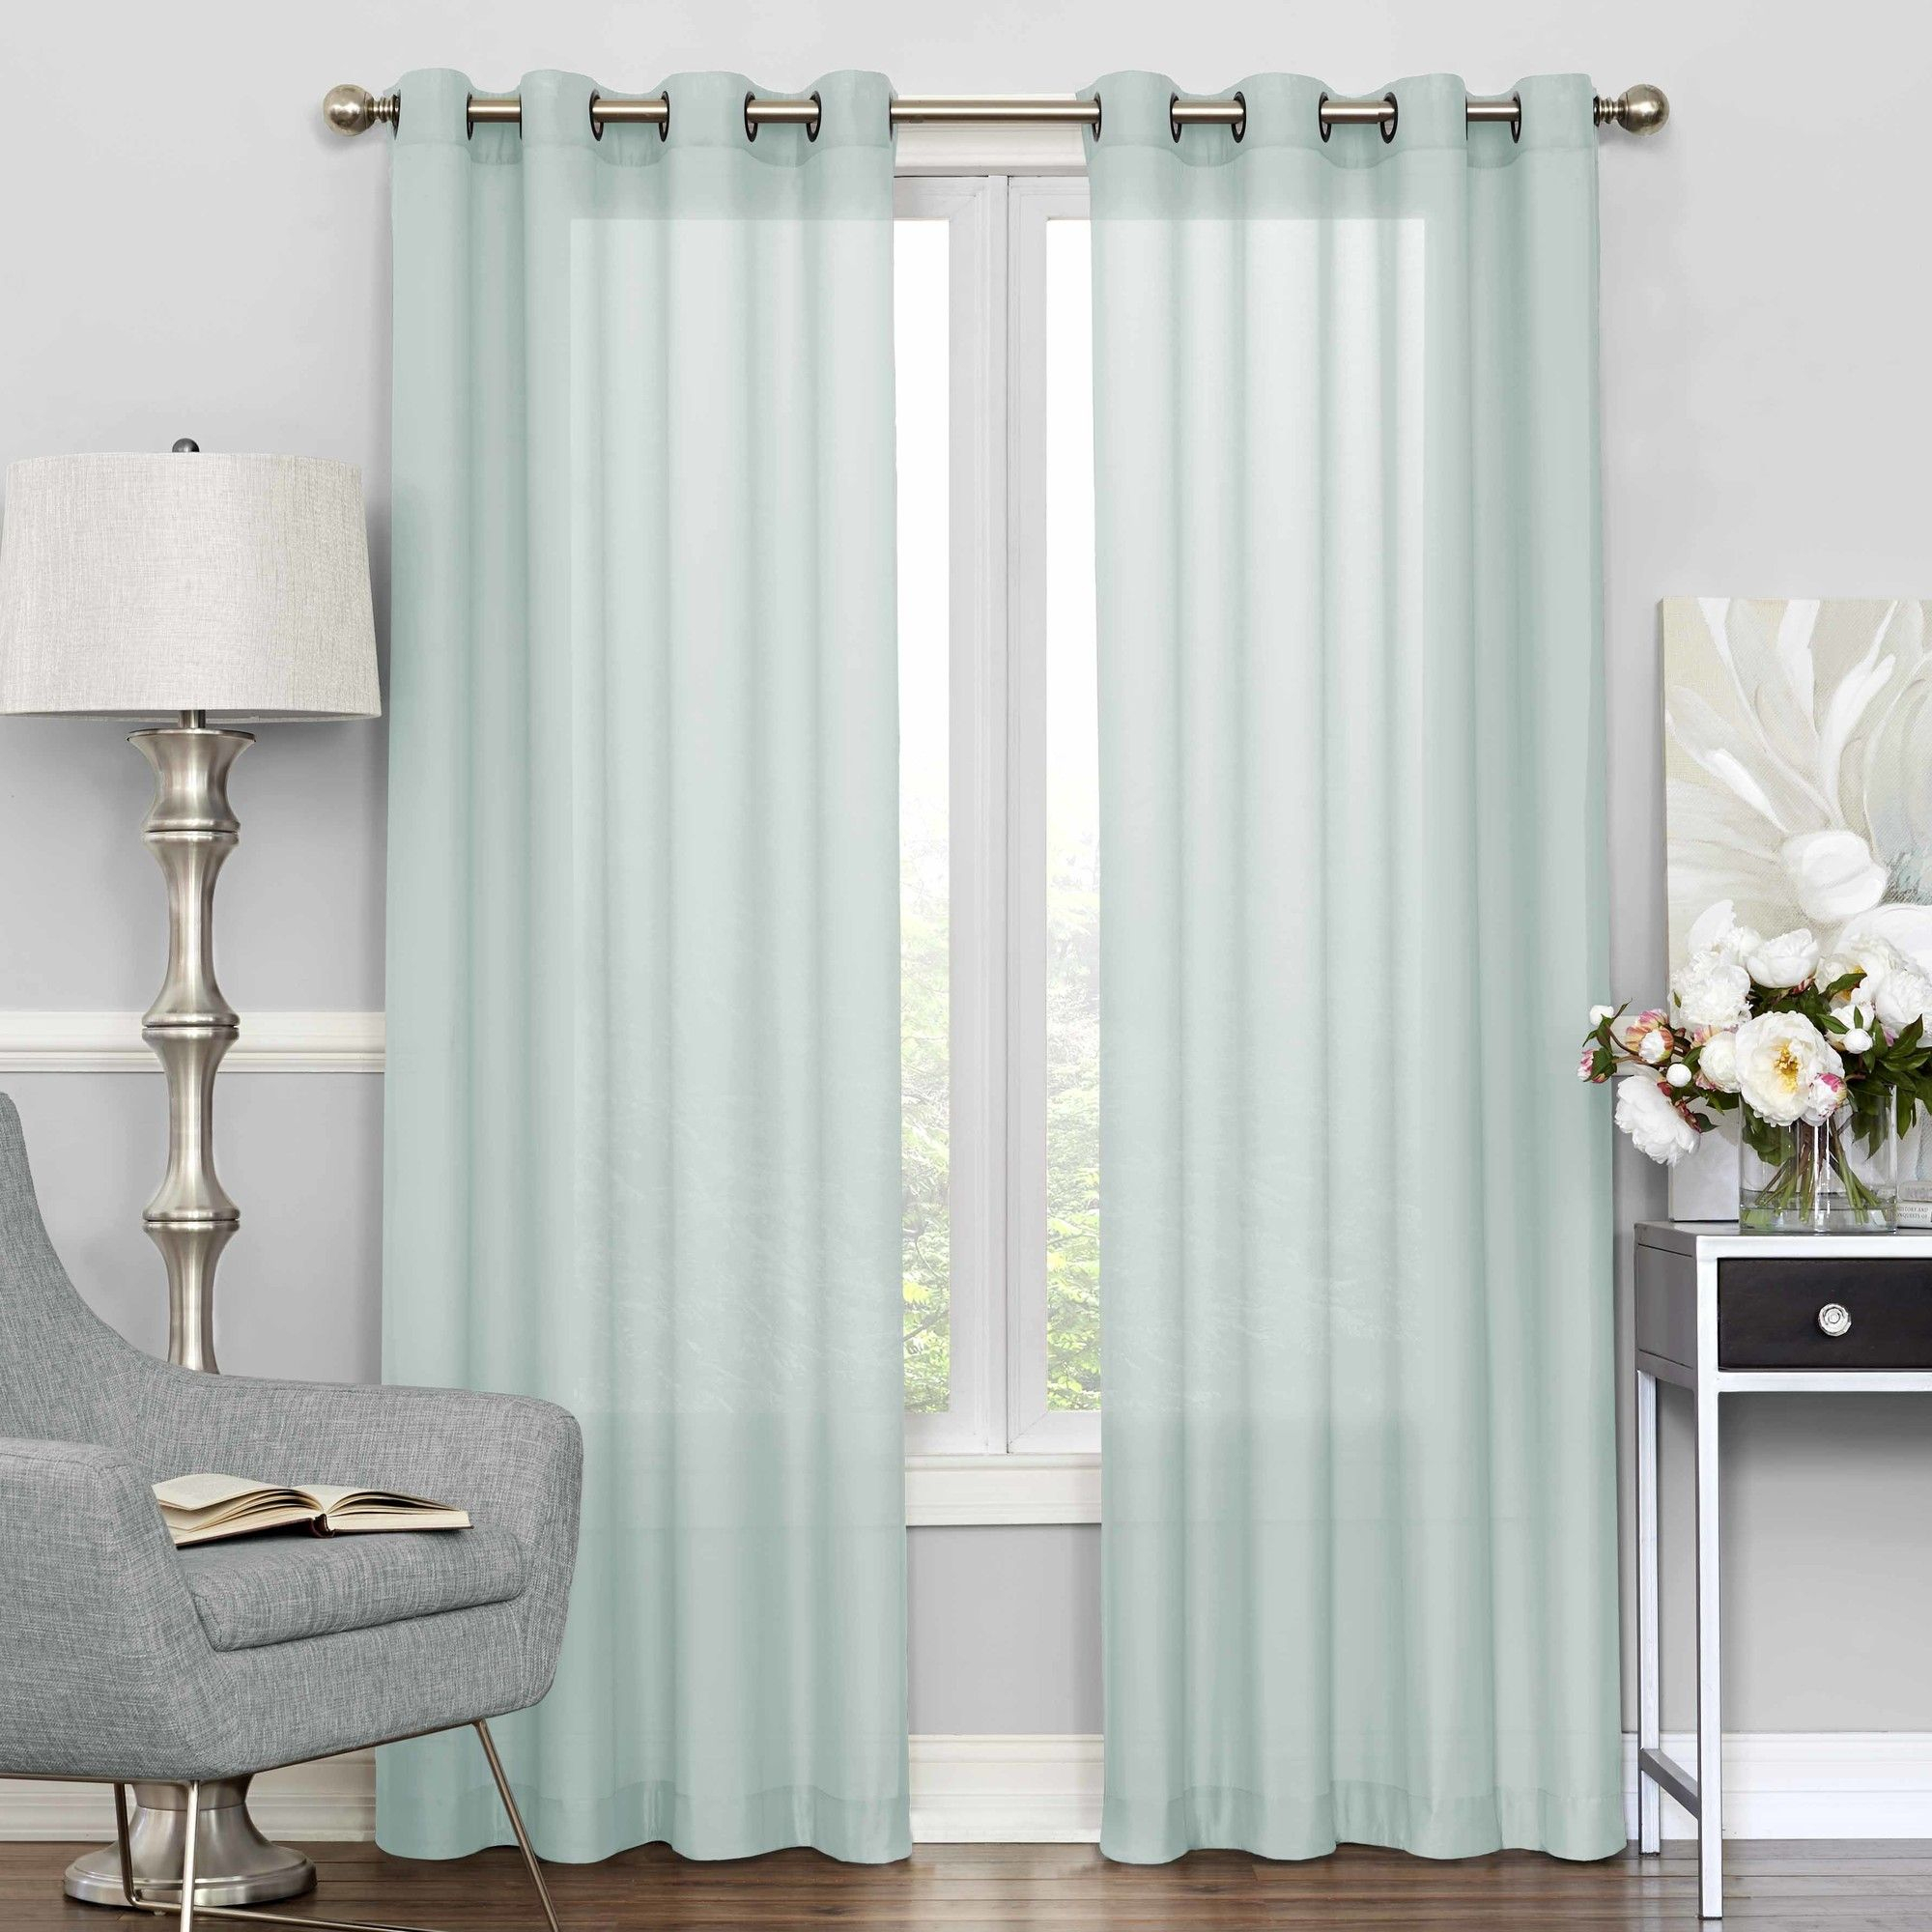 Pembrey Solid Sheer Tab Top Single Curtain Panel | Huis In In Light Filtering Sheer Single Curtain Panels (View 17 of 20)